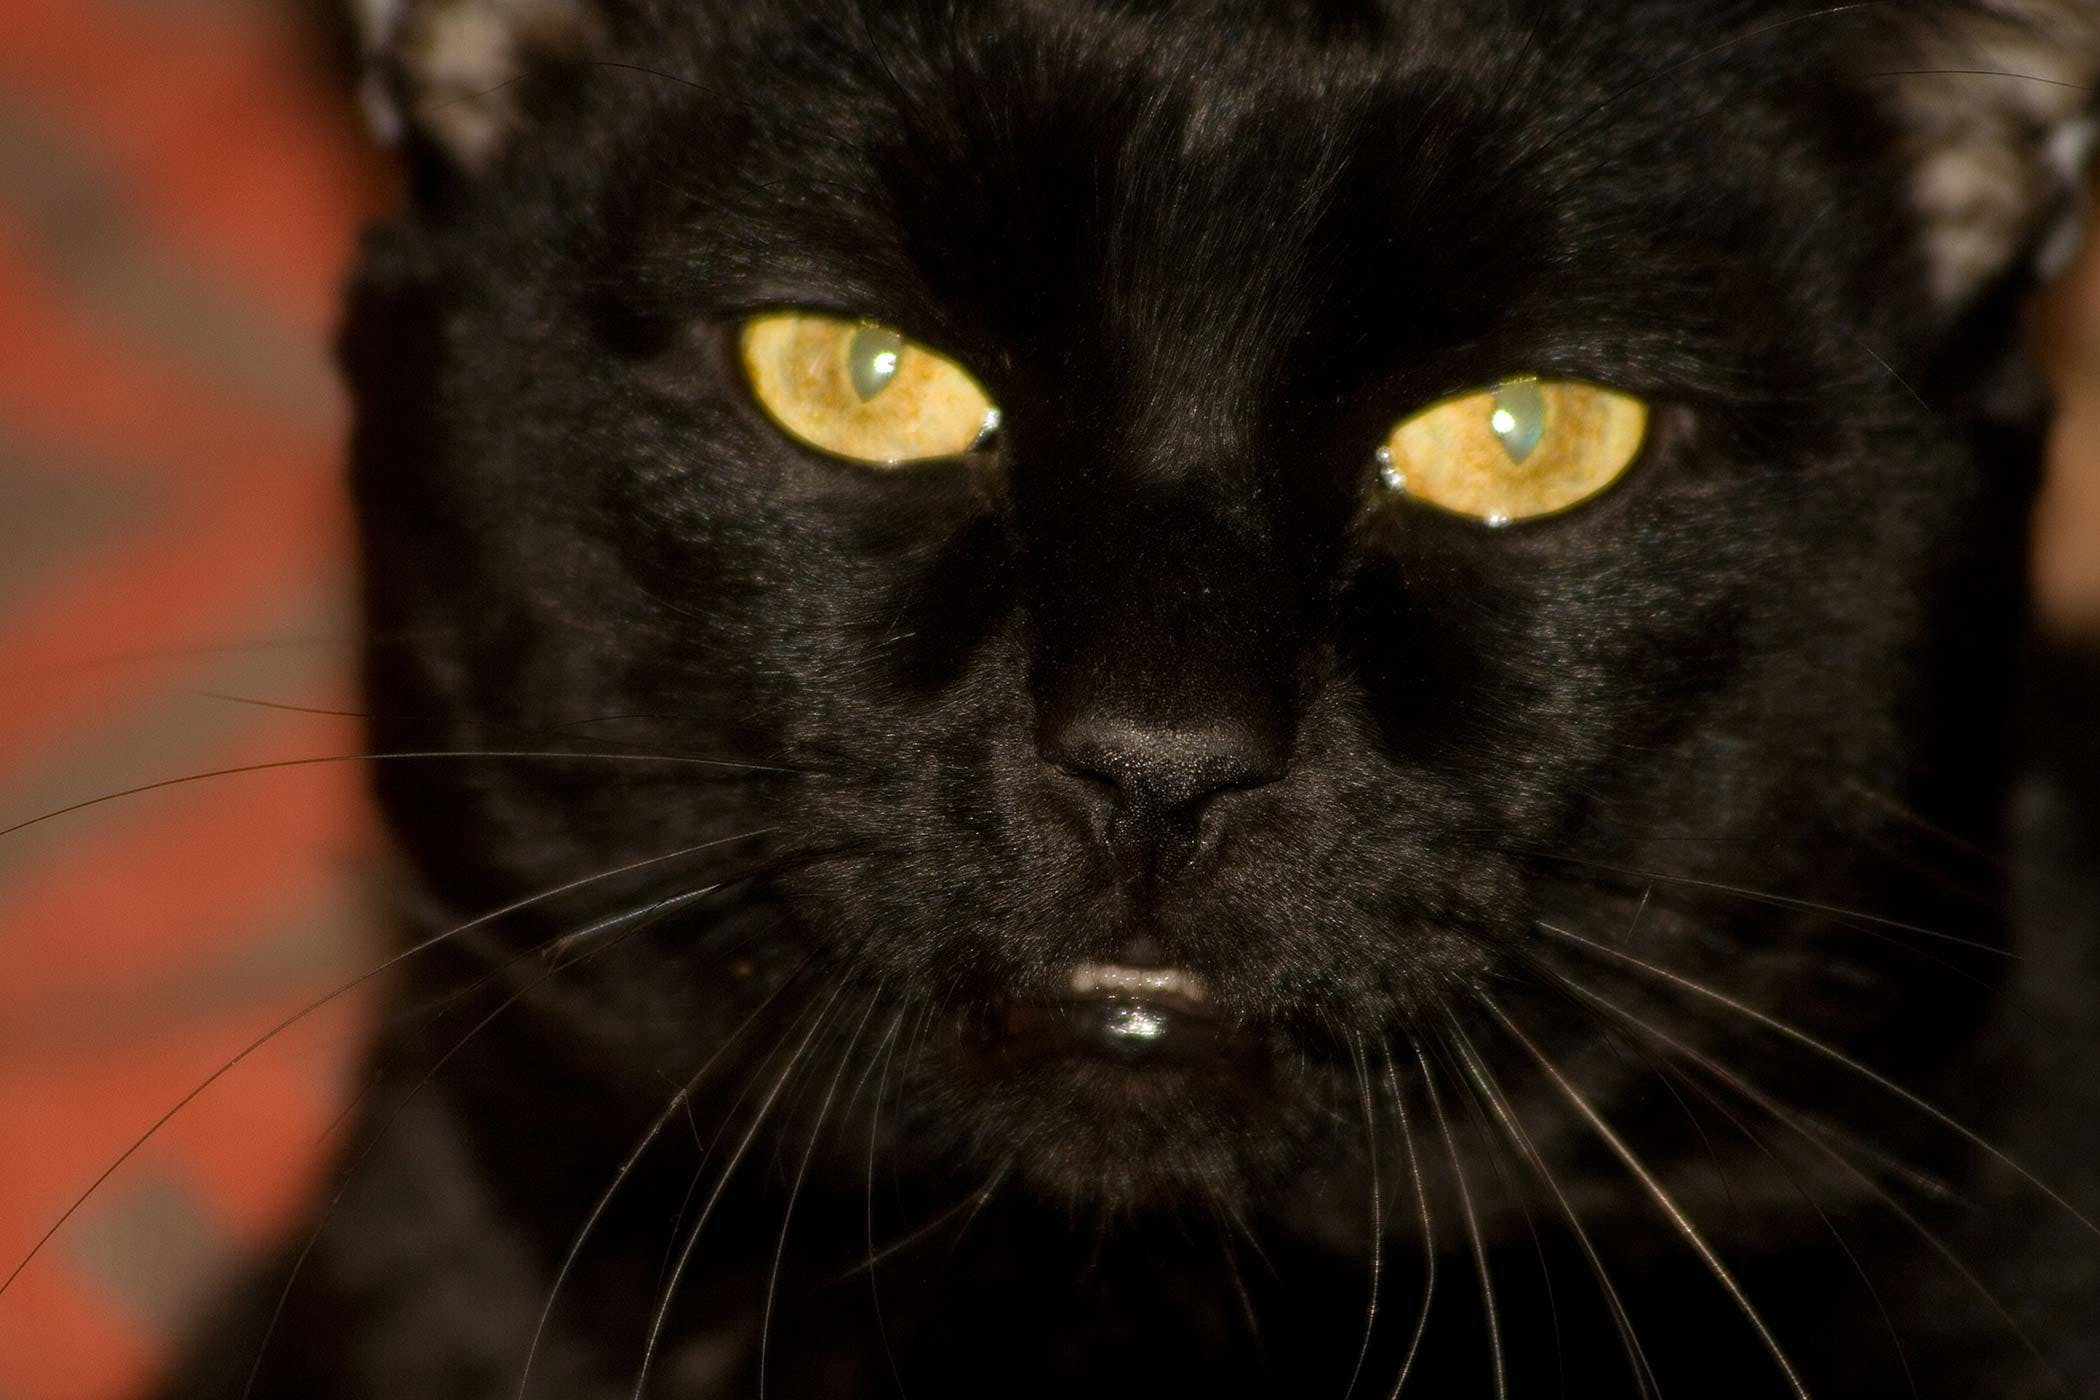 Worms in a cat: signs of infection with parasites